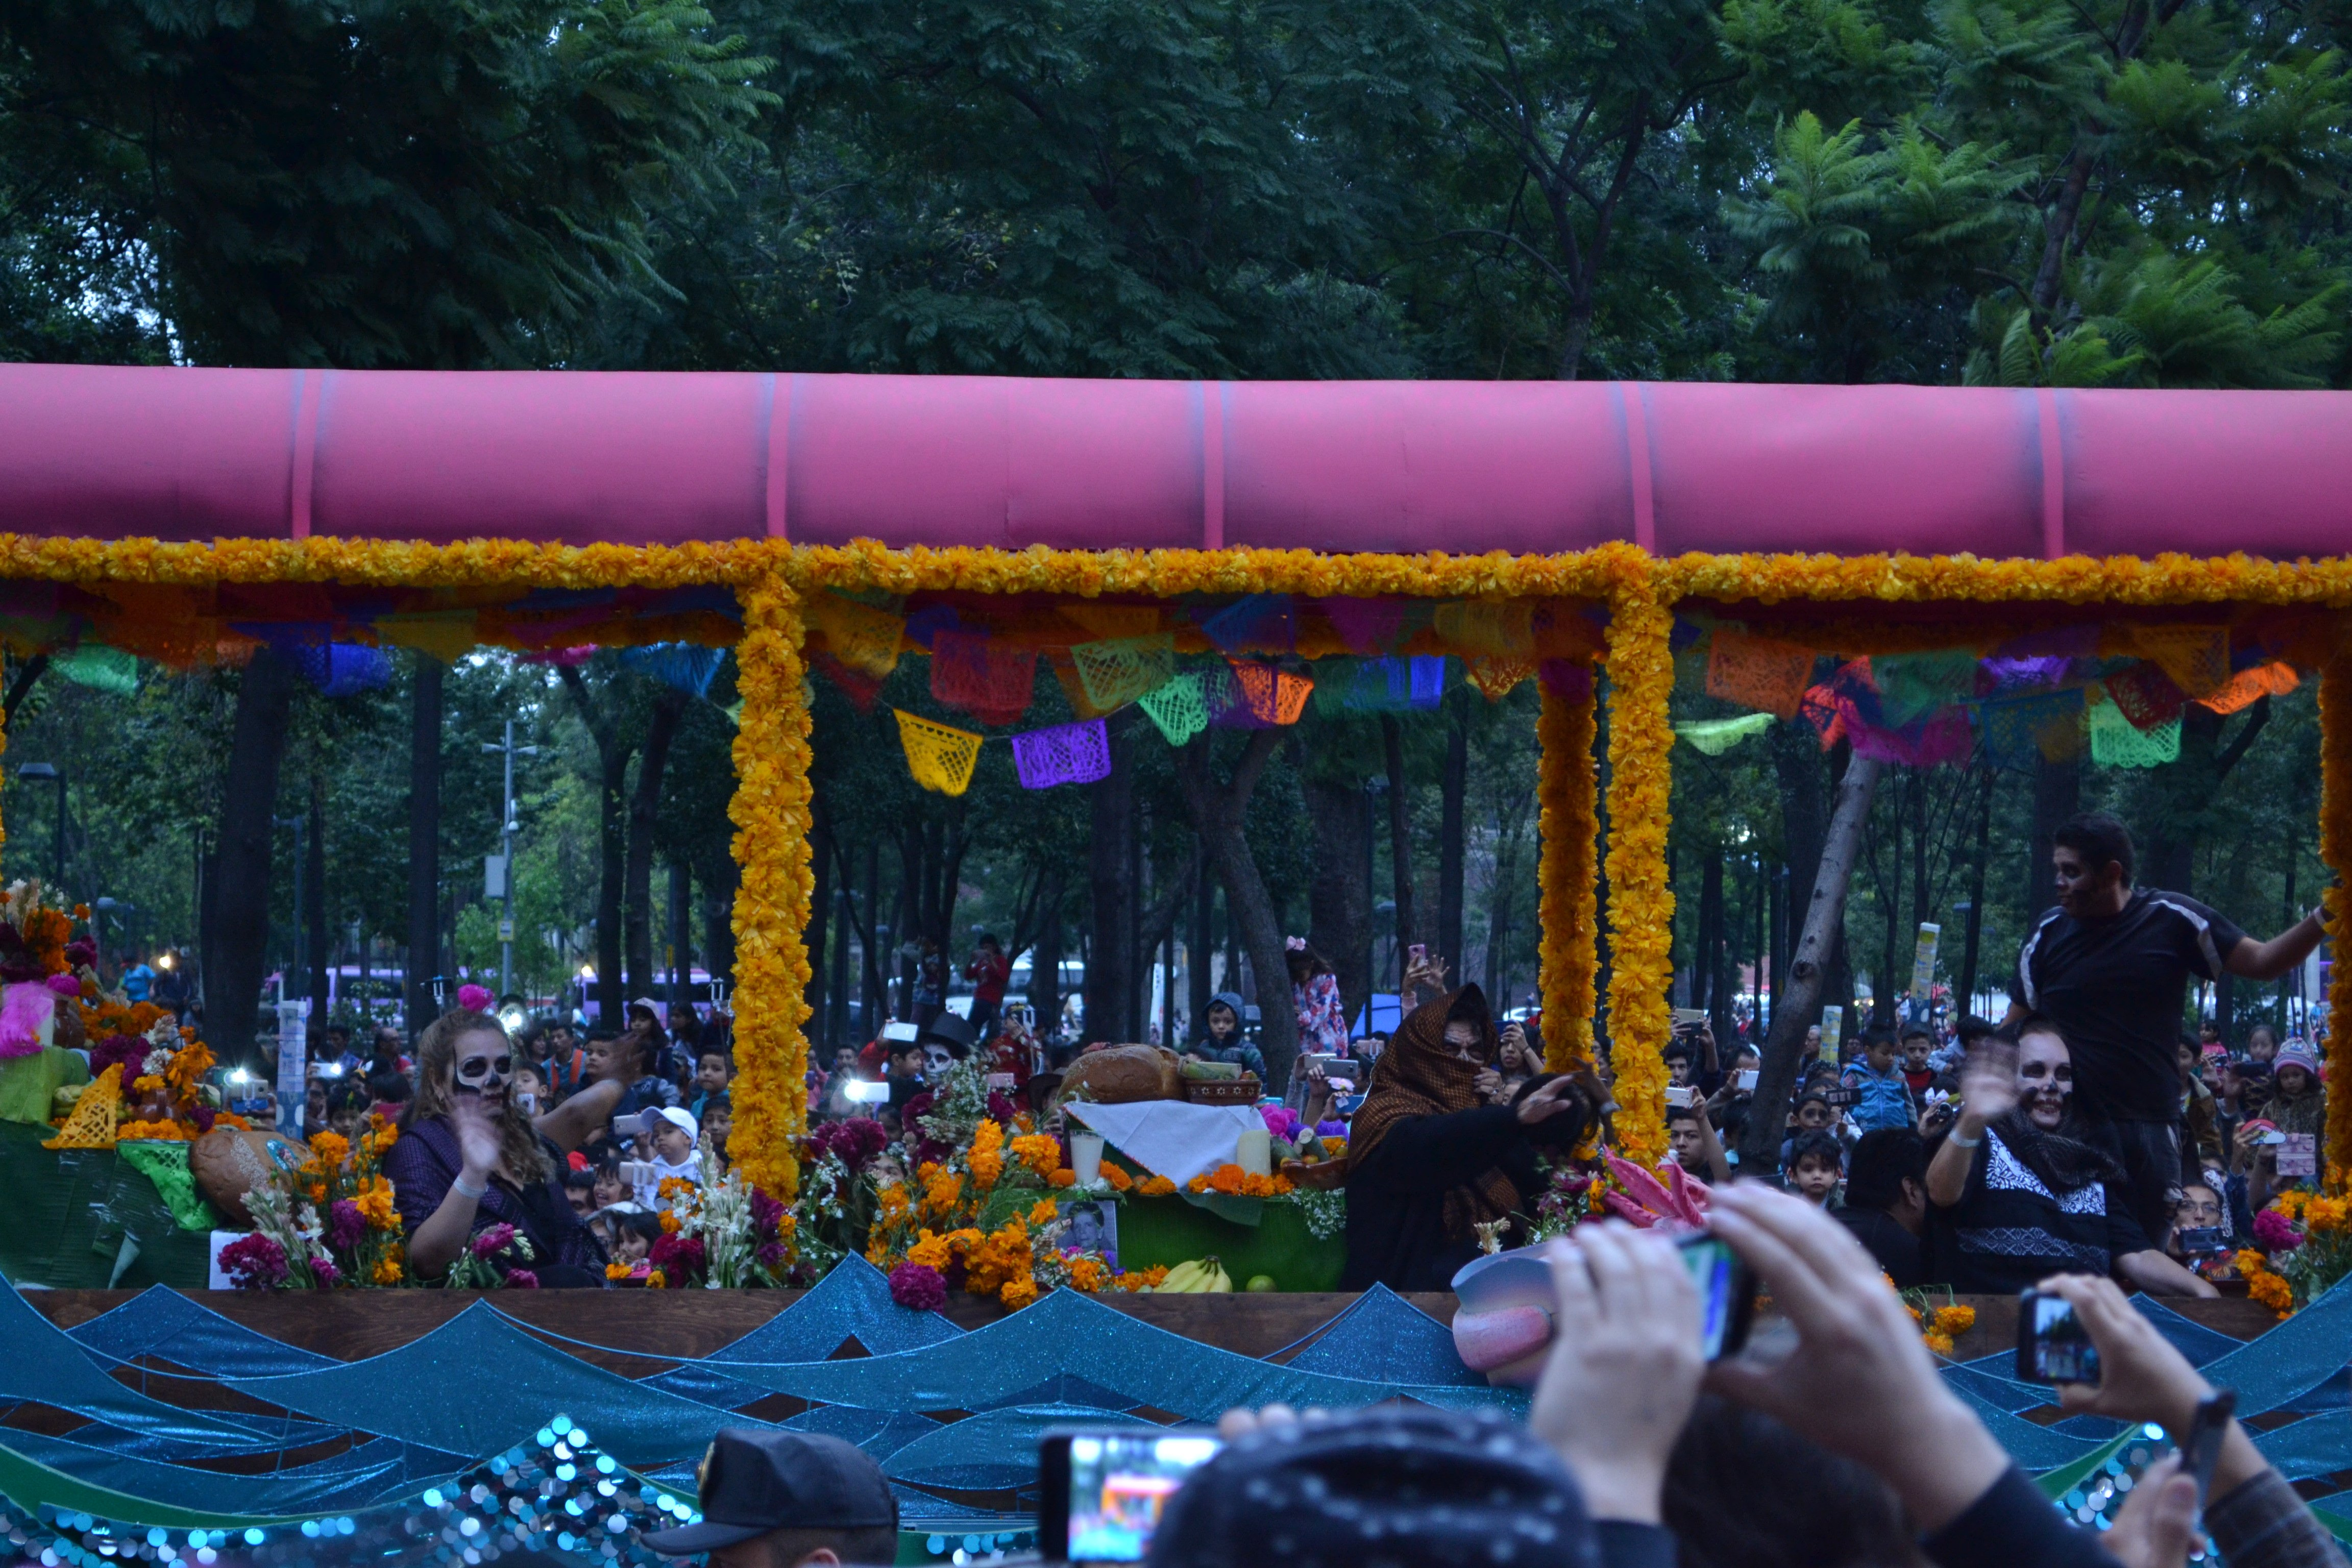 """Cempasúchil flowers, also known as """"The Flower of the Dead"""" are one of the most important symbols of this celebration"""